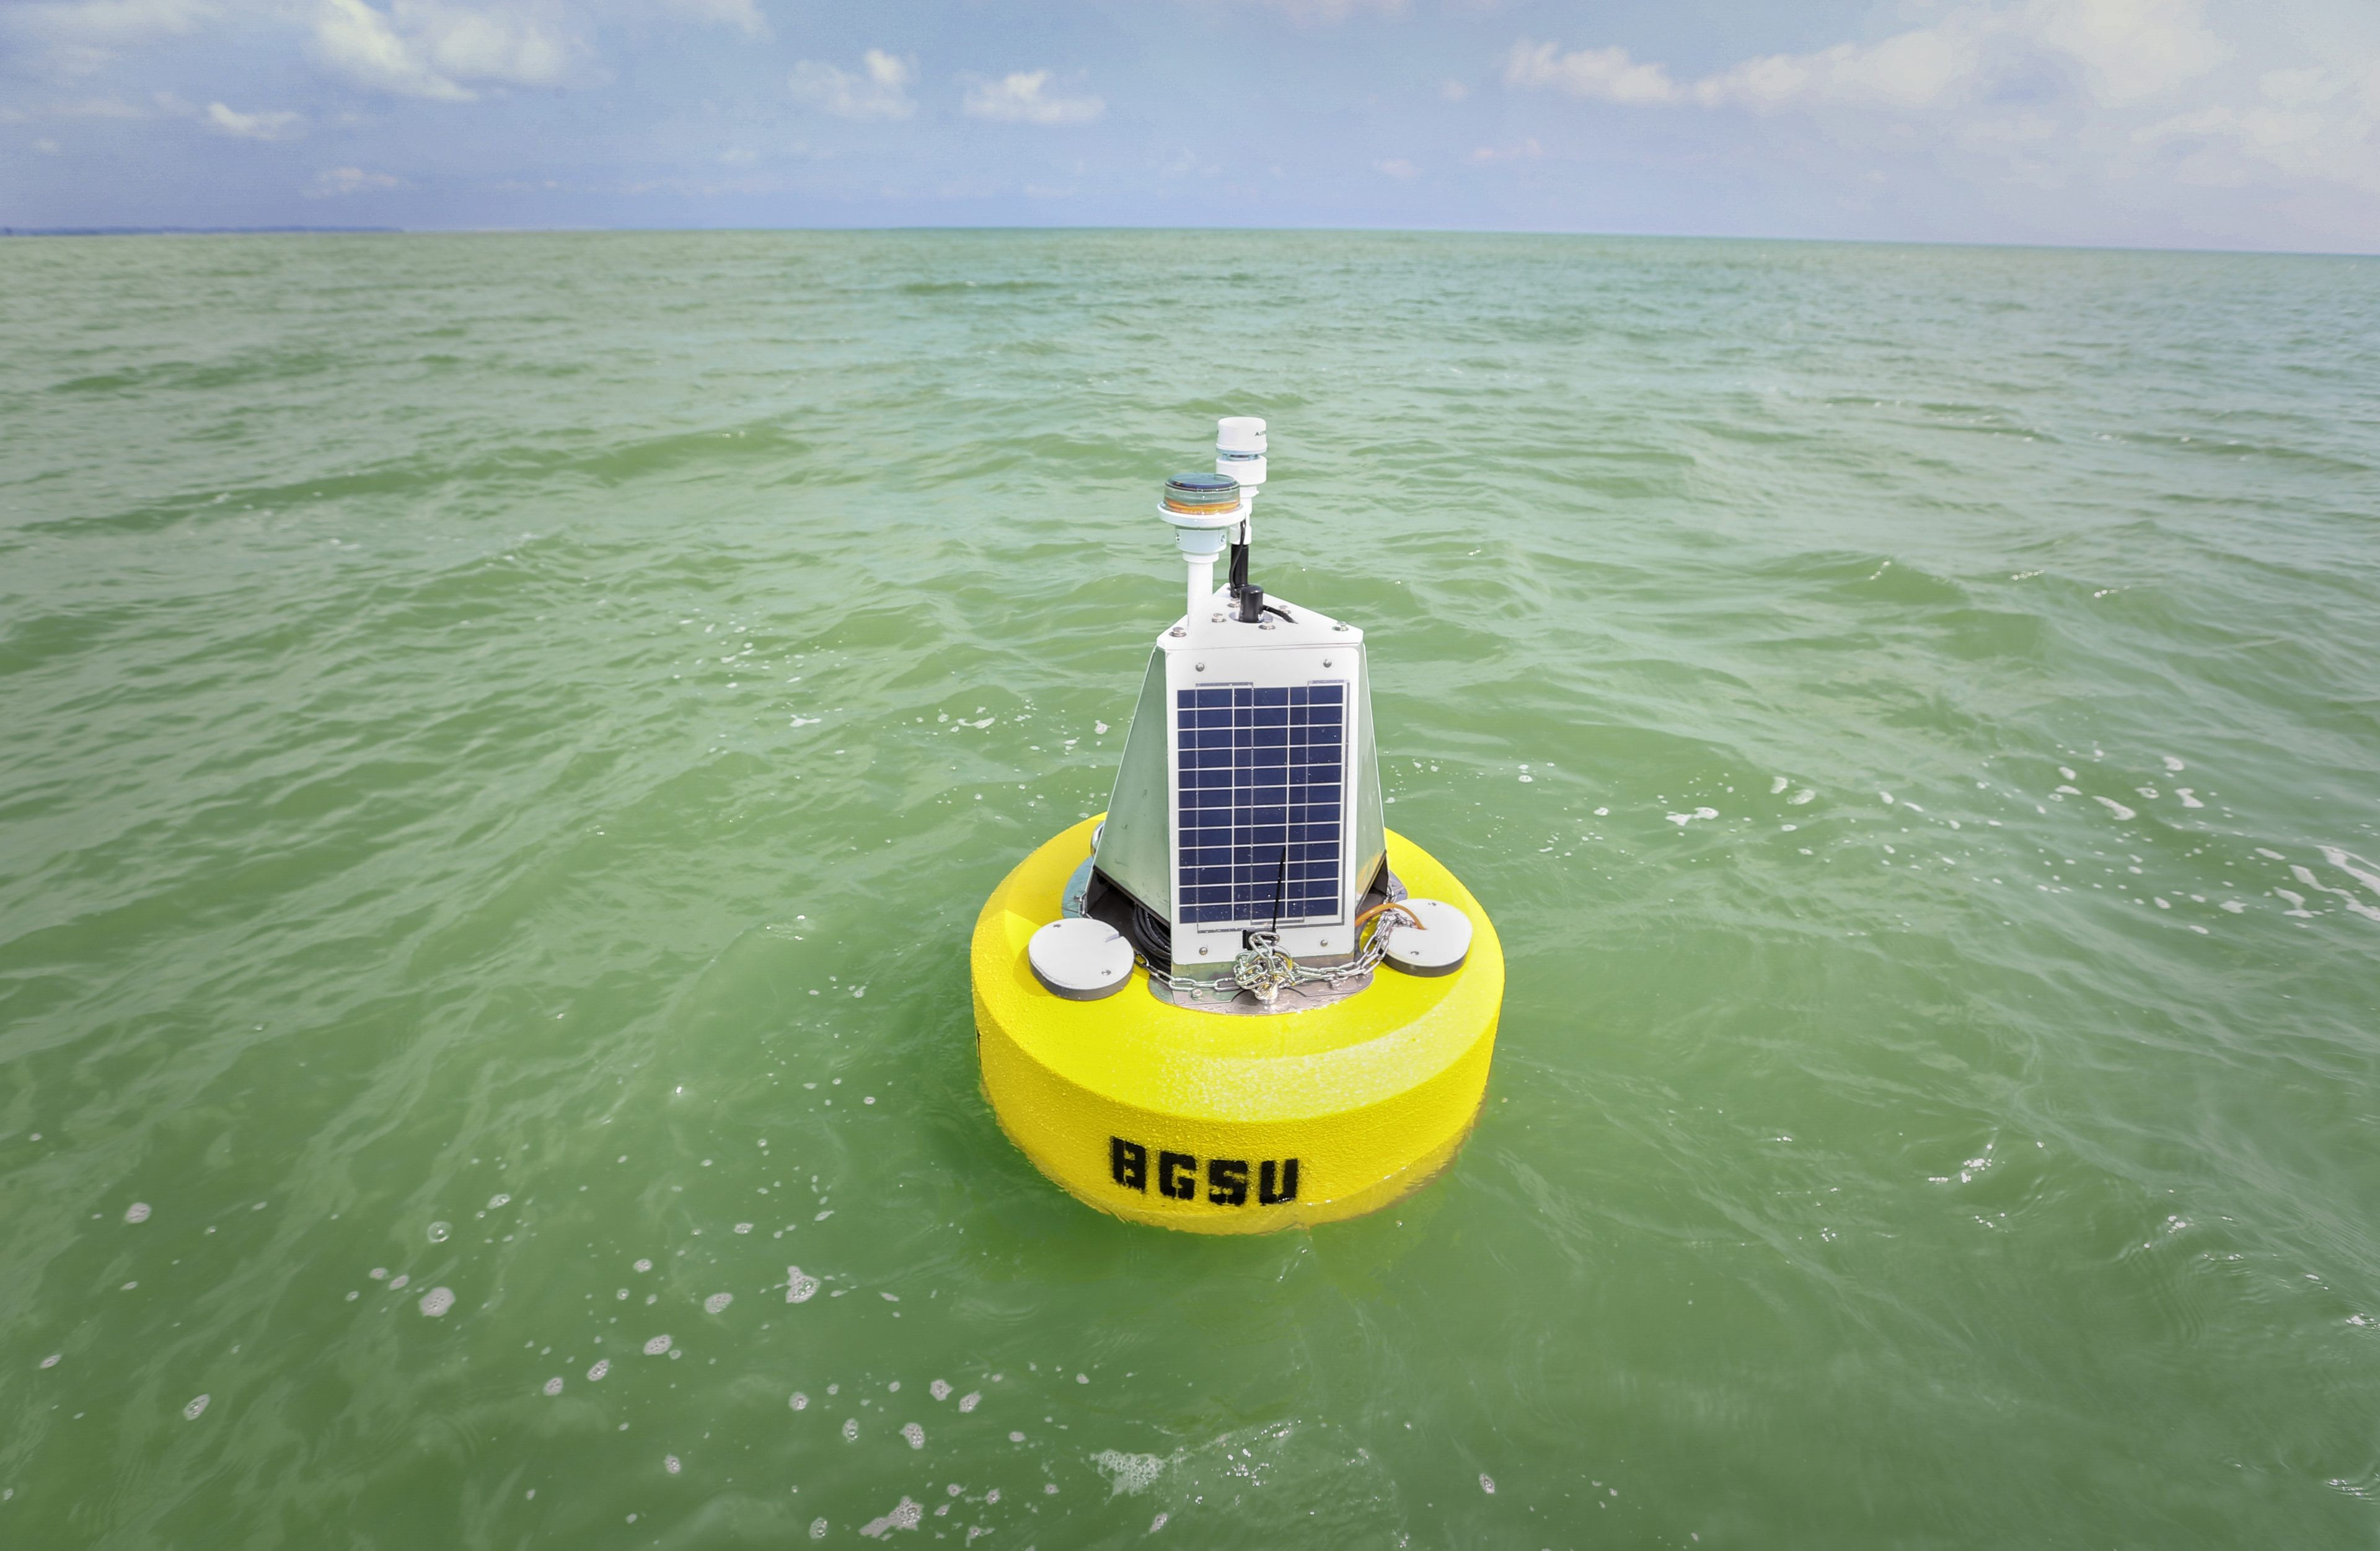 BGSU Scientific equipment in Lake Erie for research